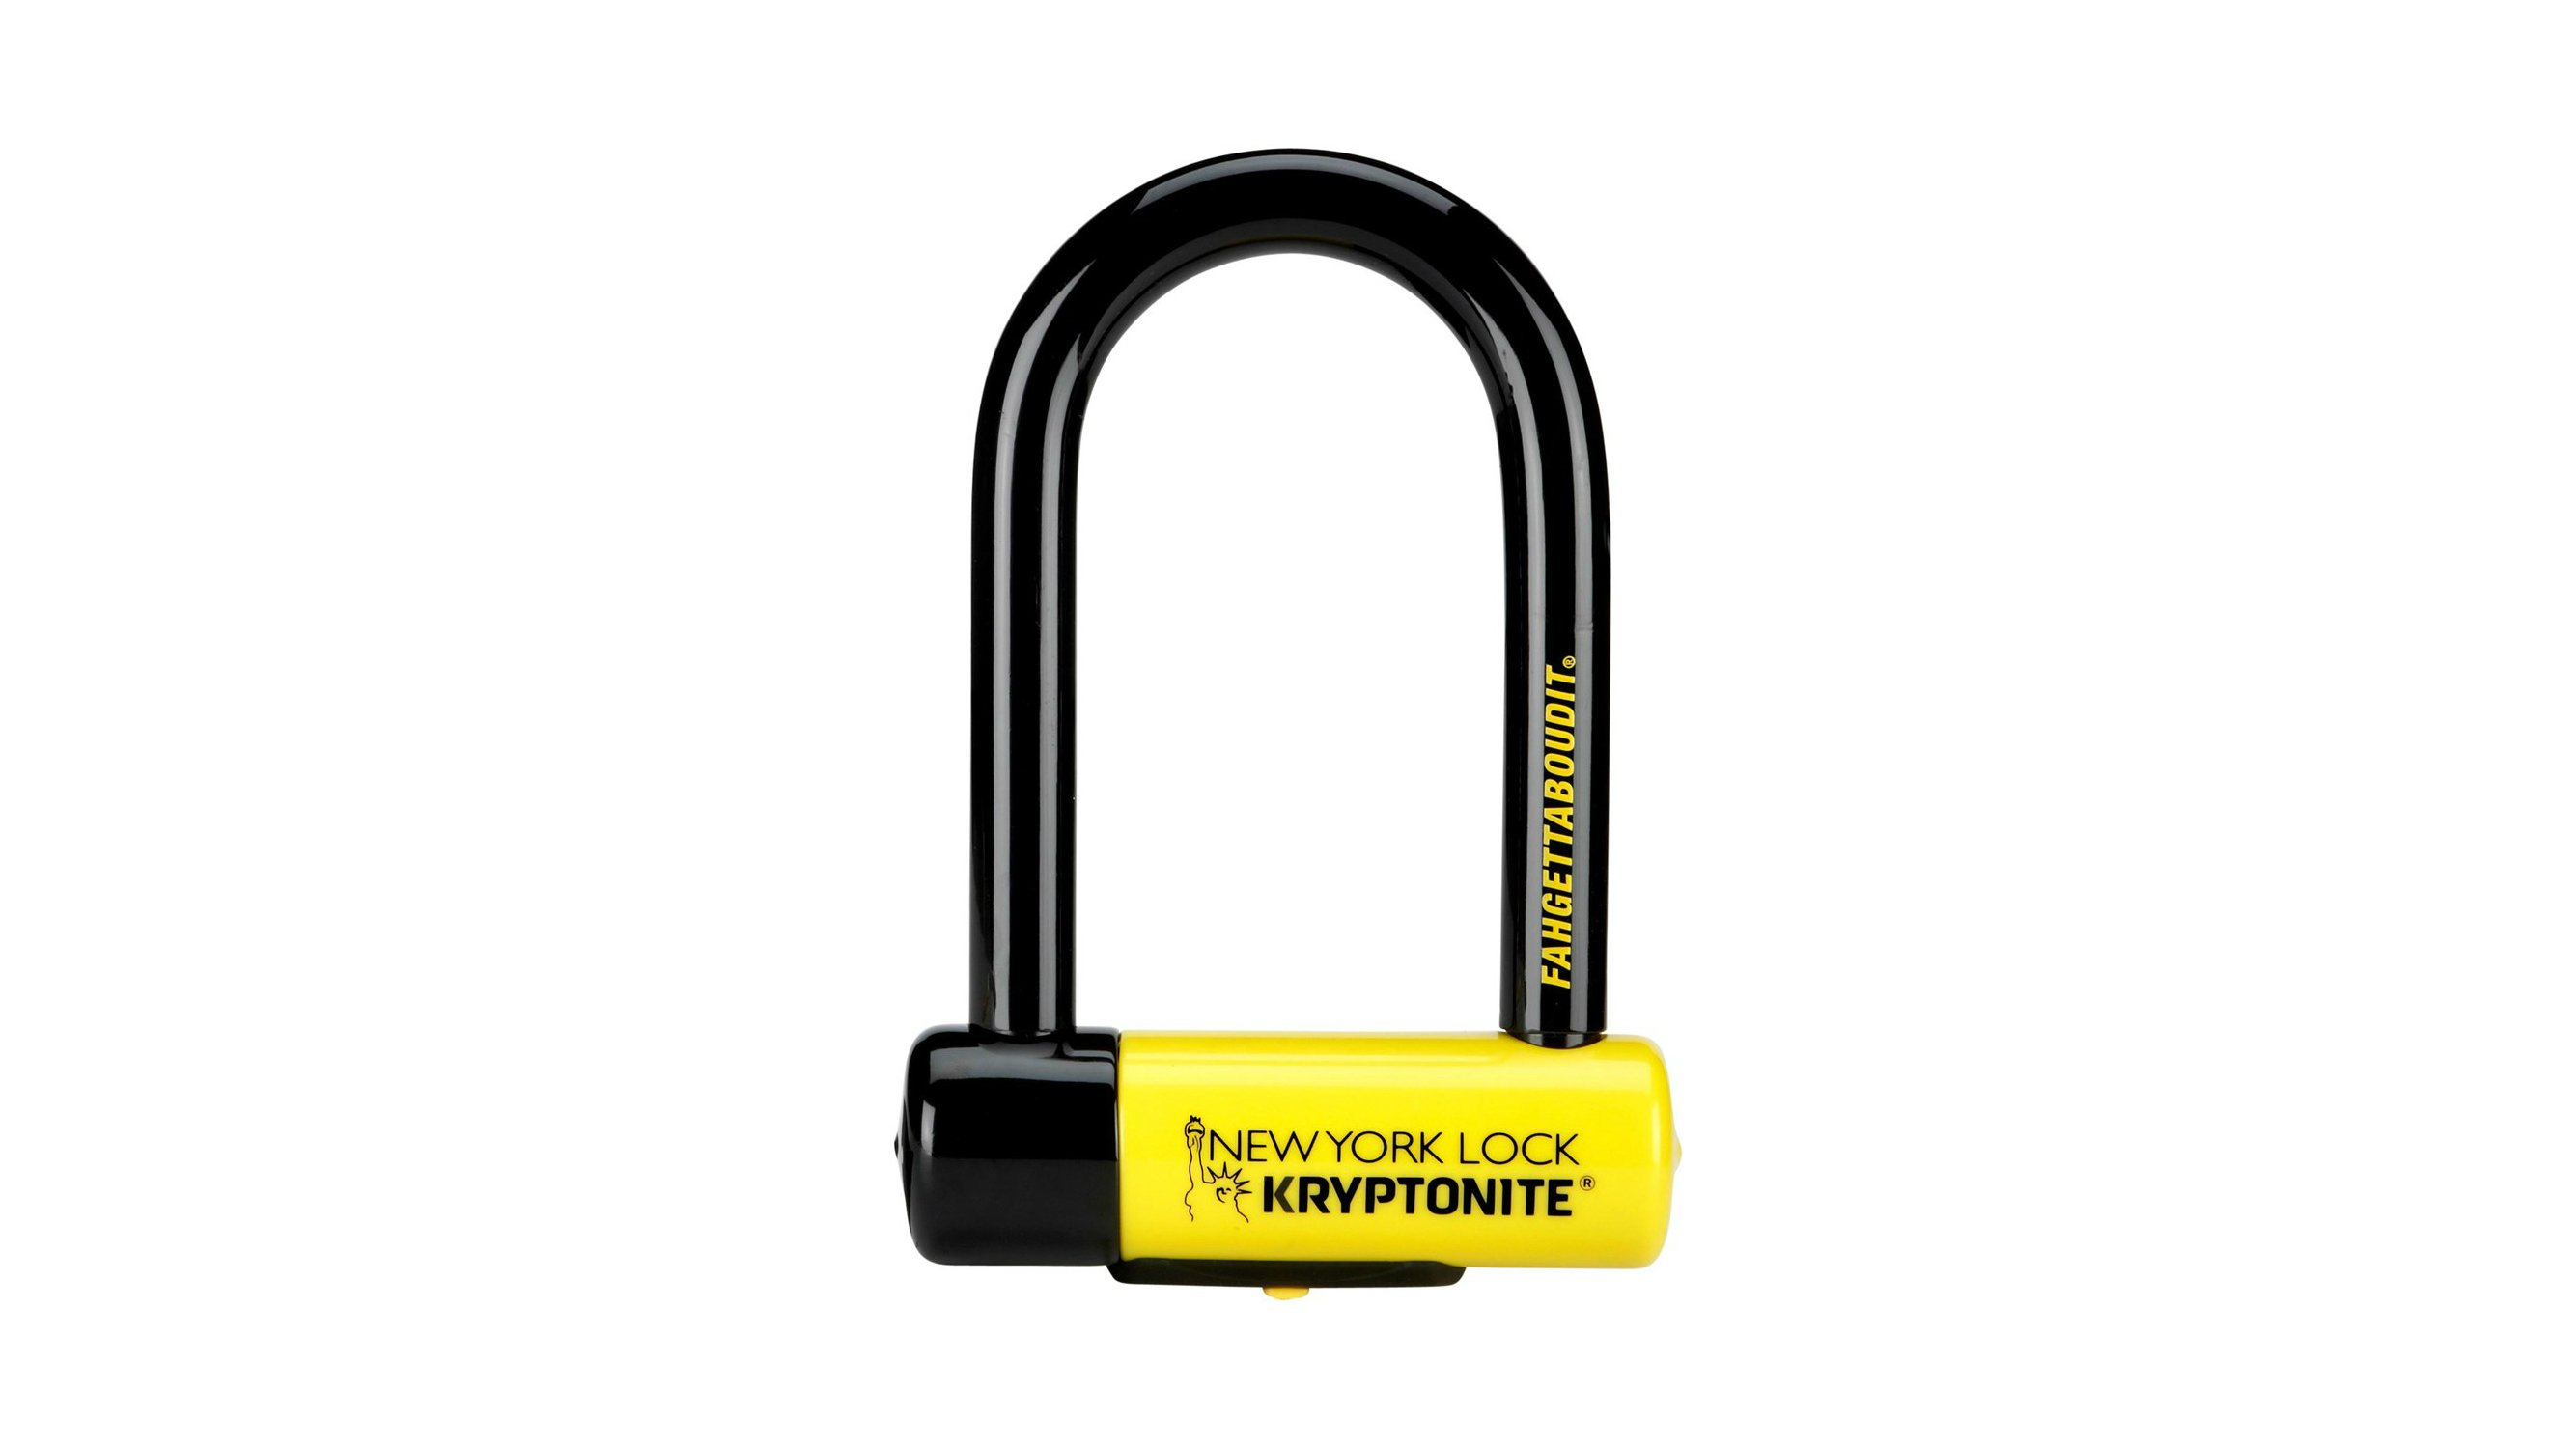 Best bike lock 2019: The best and most secure bike locks to buy